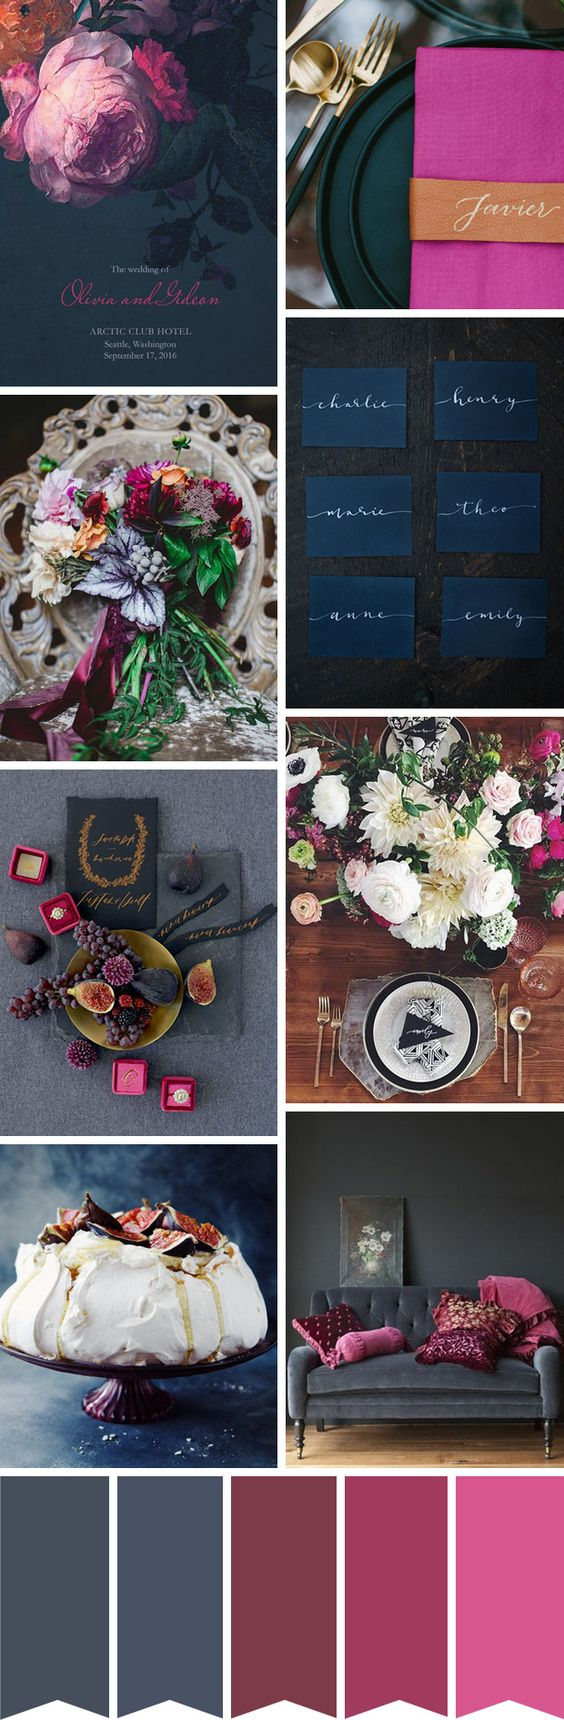 A Chic Charcoal, Navy and Fuschia Wedding Colour Palette   www.onefabday.com